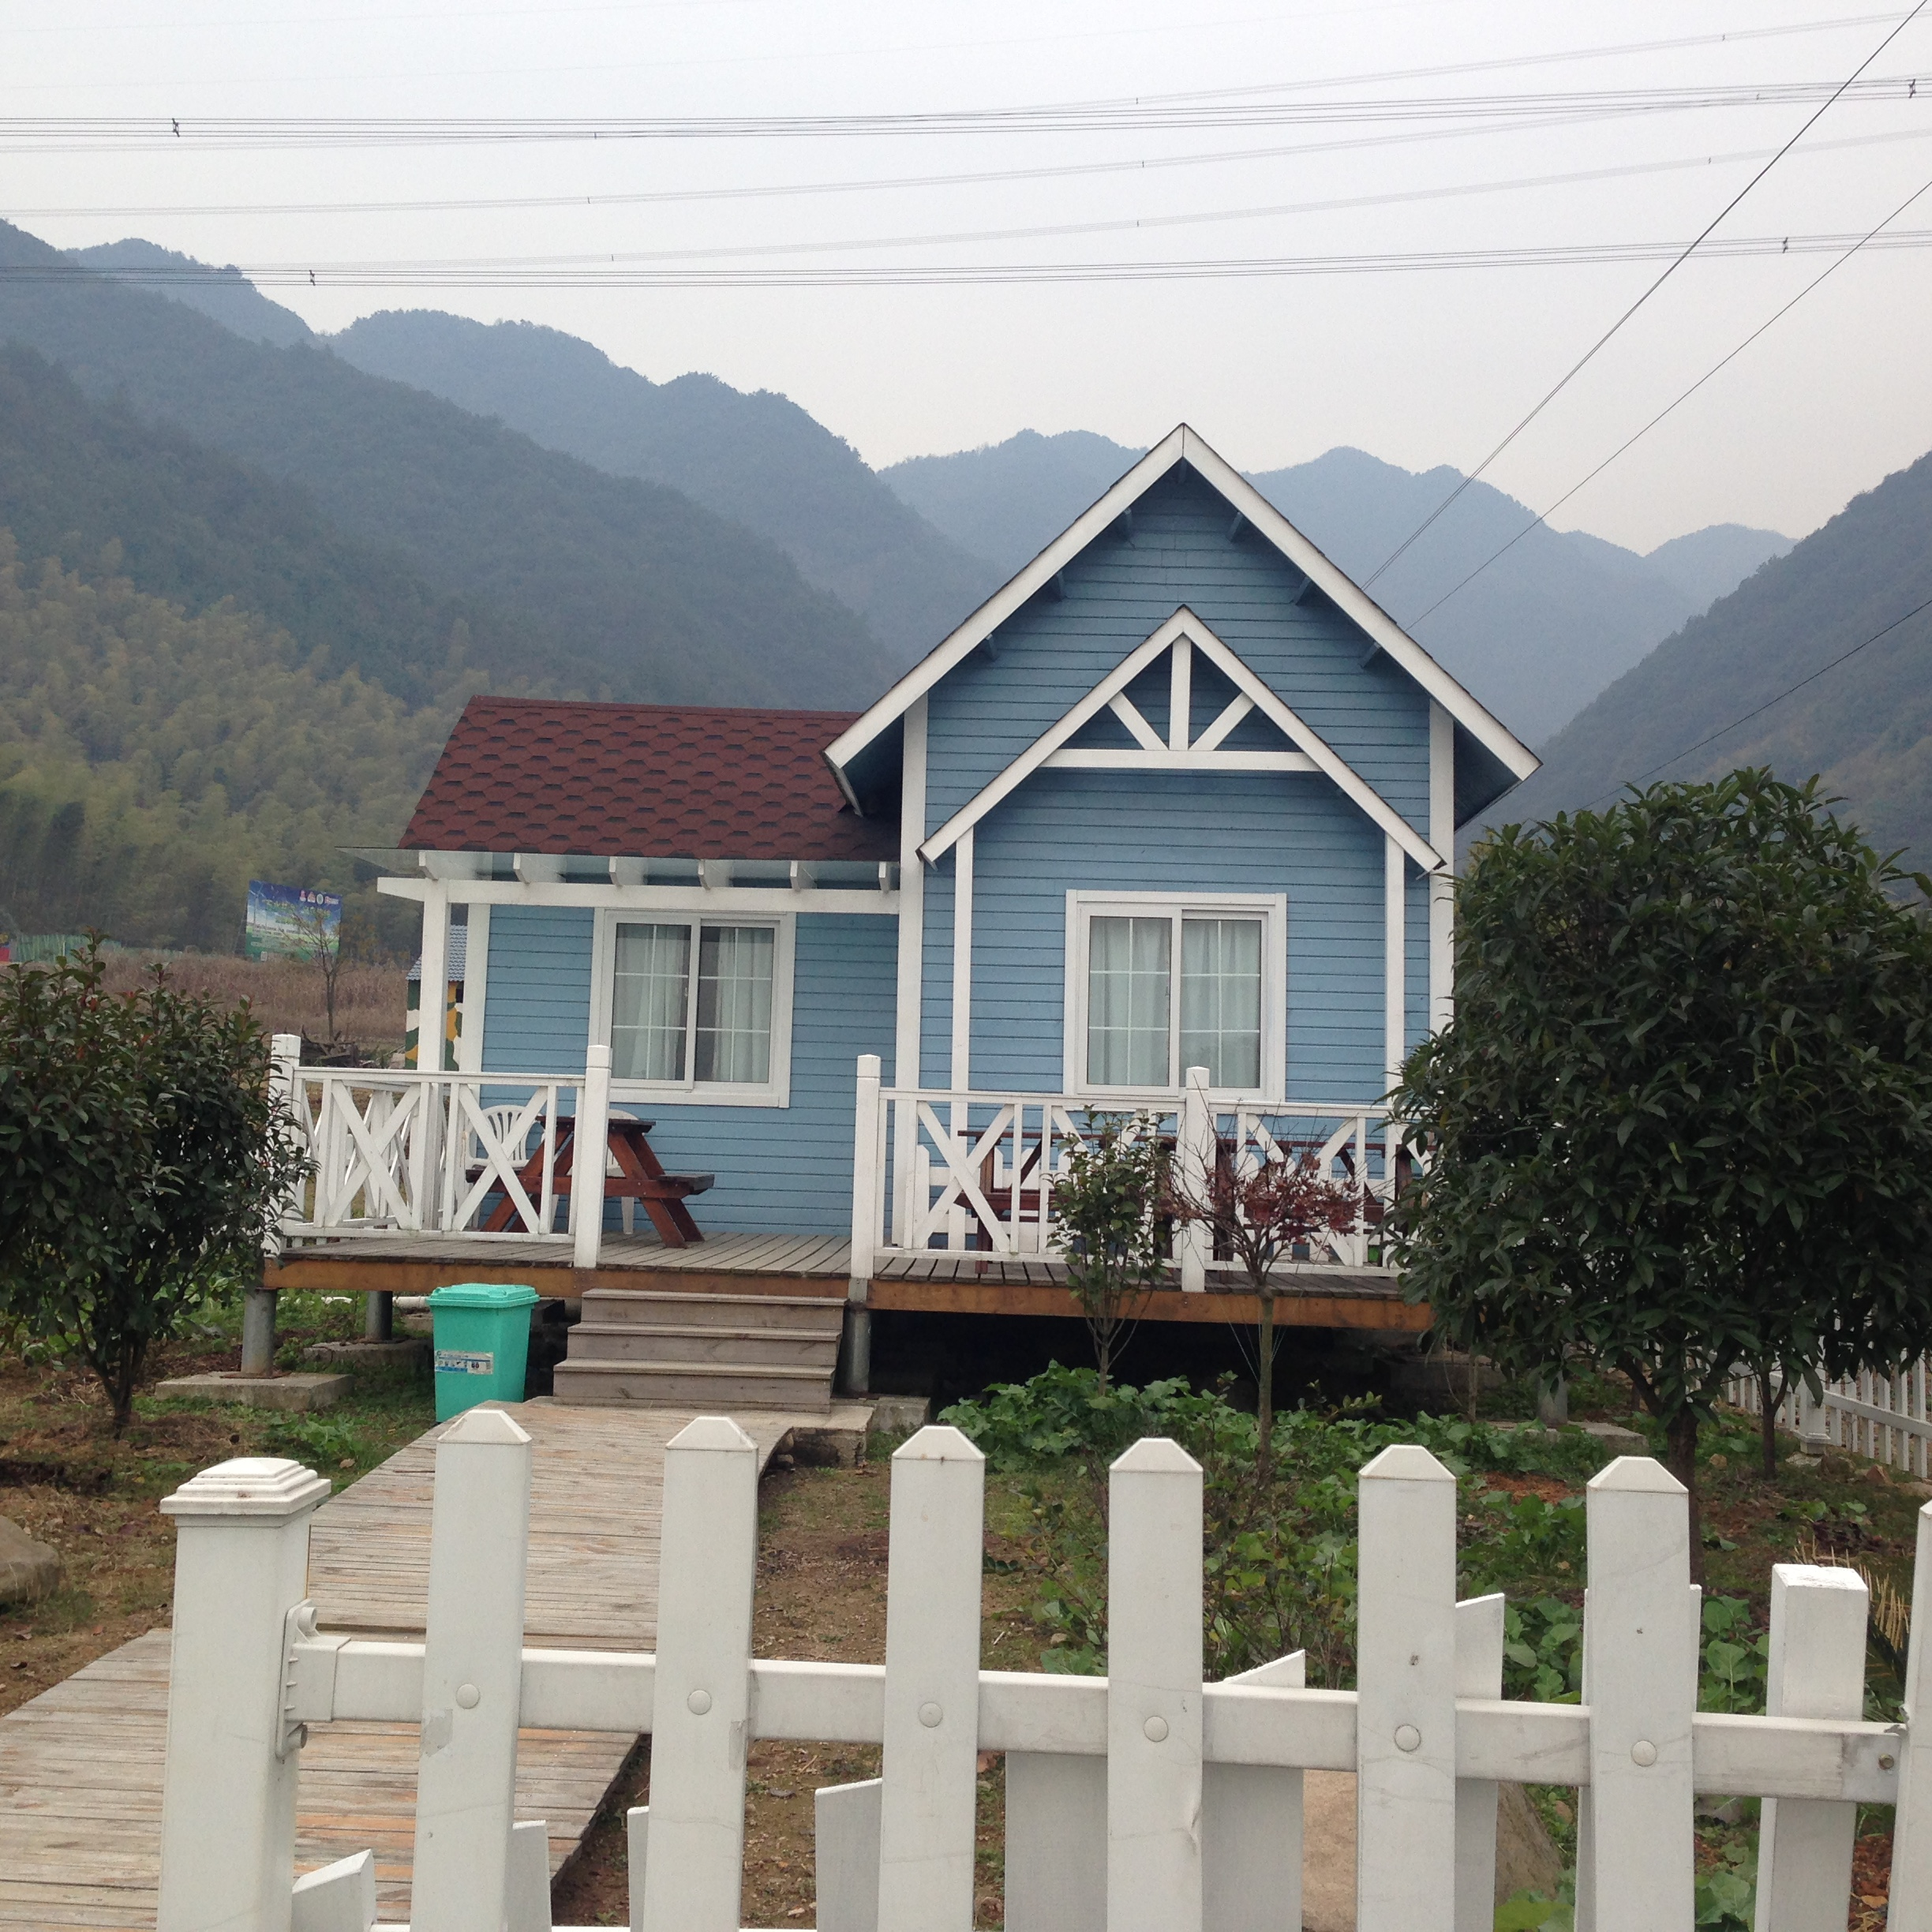 Log wooden cottage prefabricated villa houses for rural living with Taizhou original